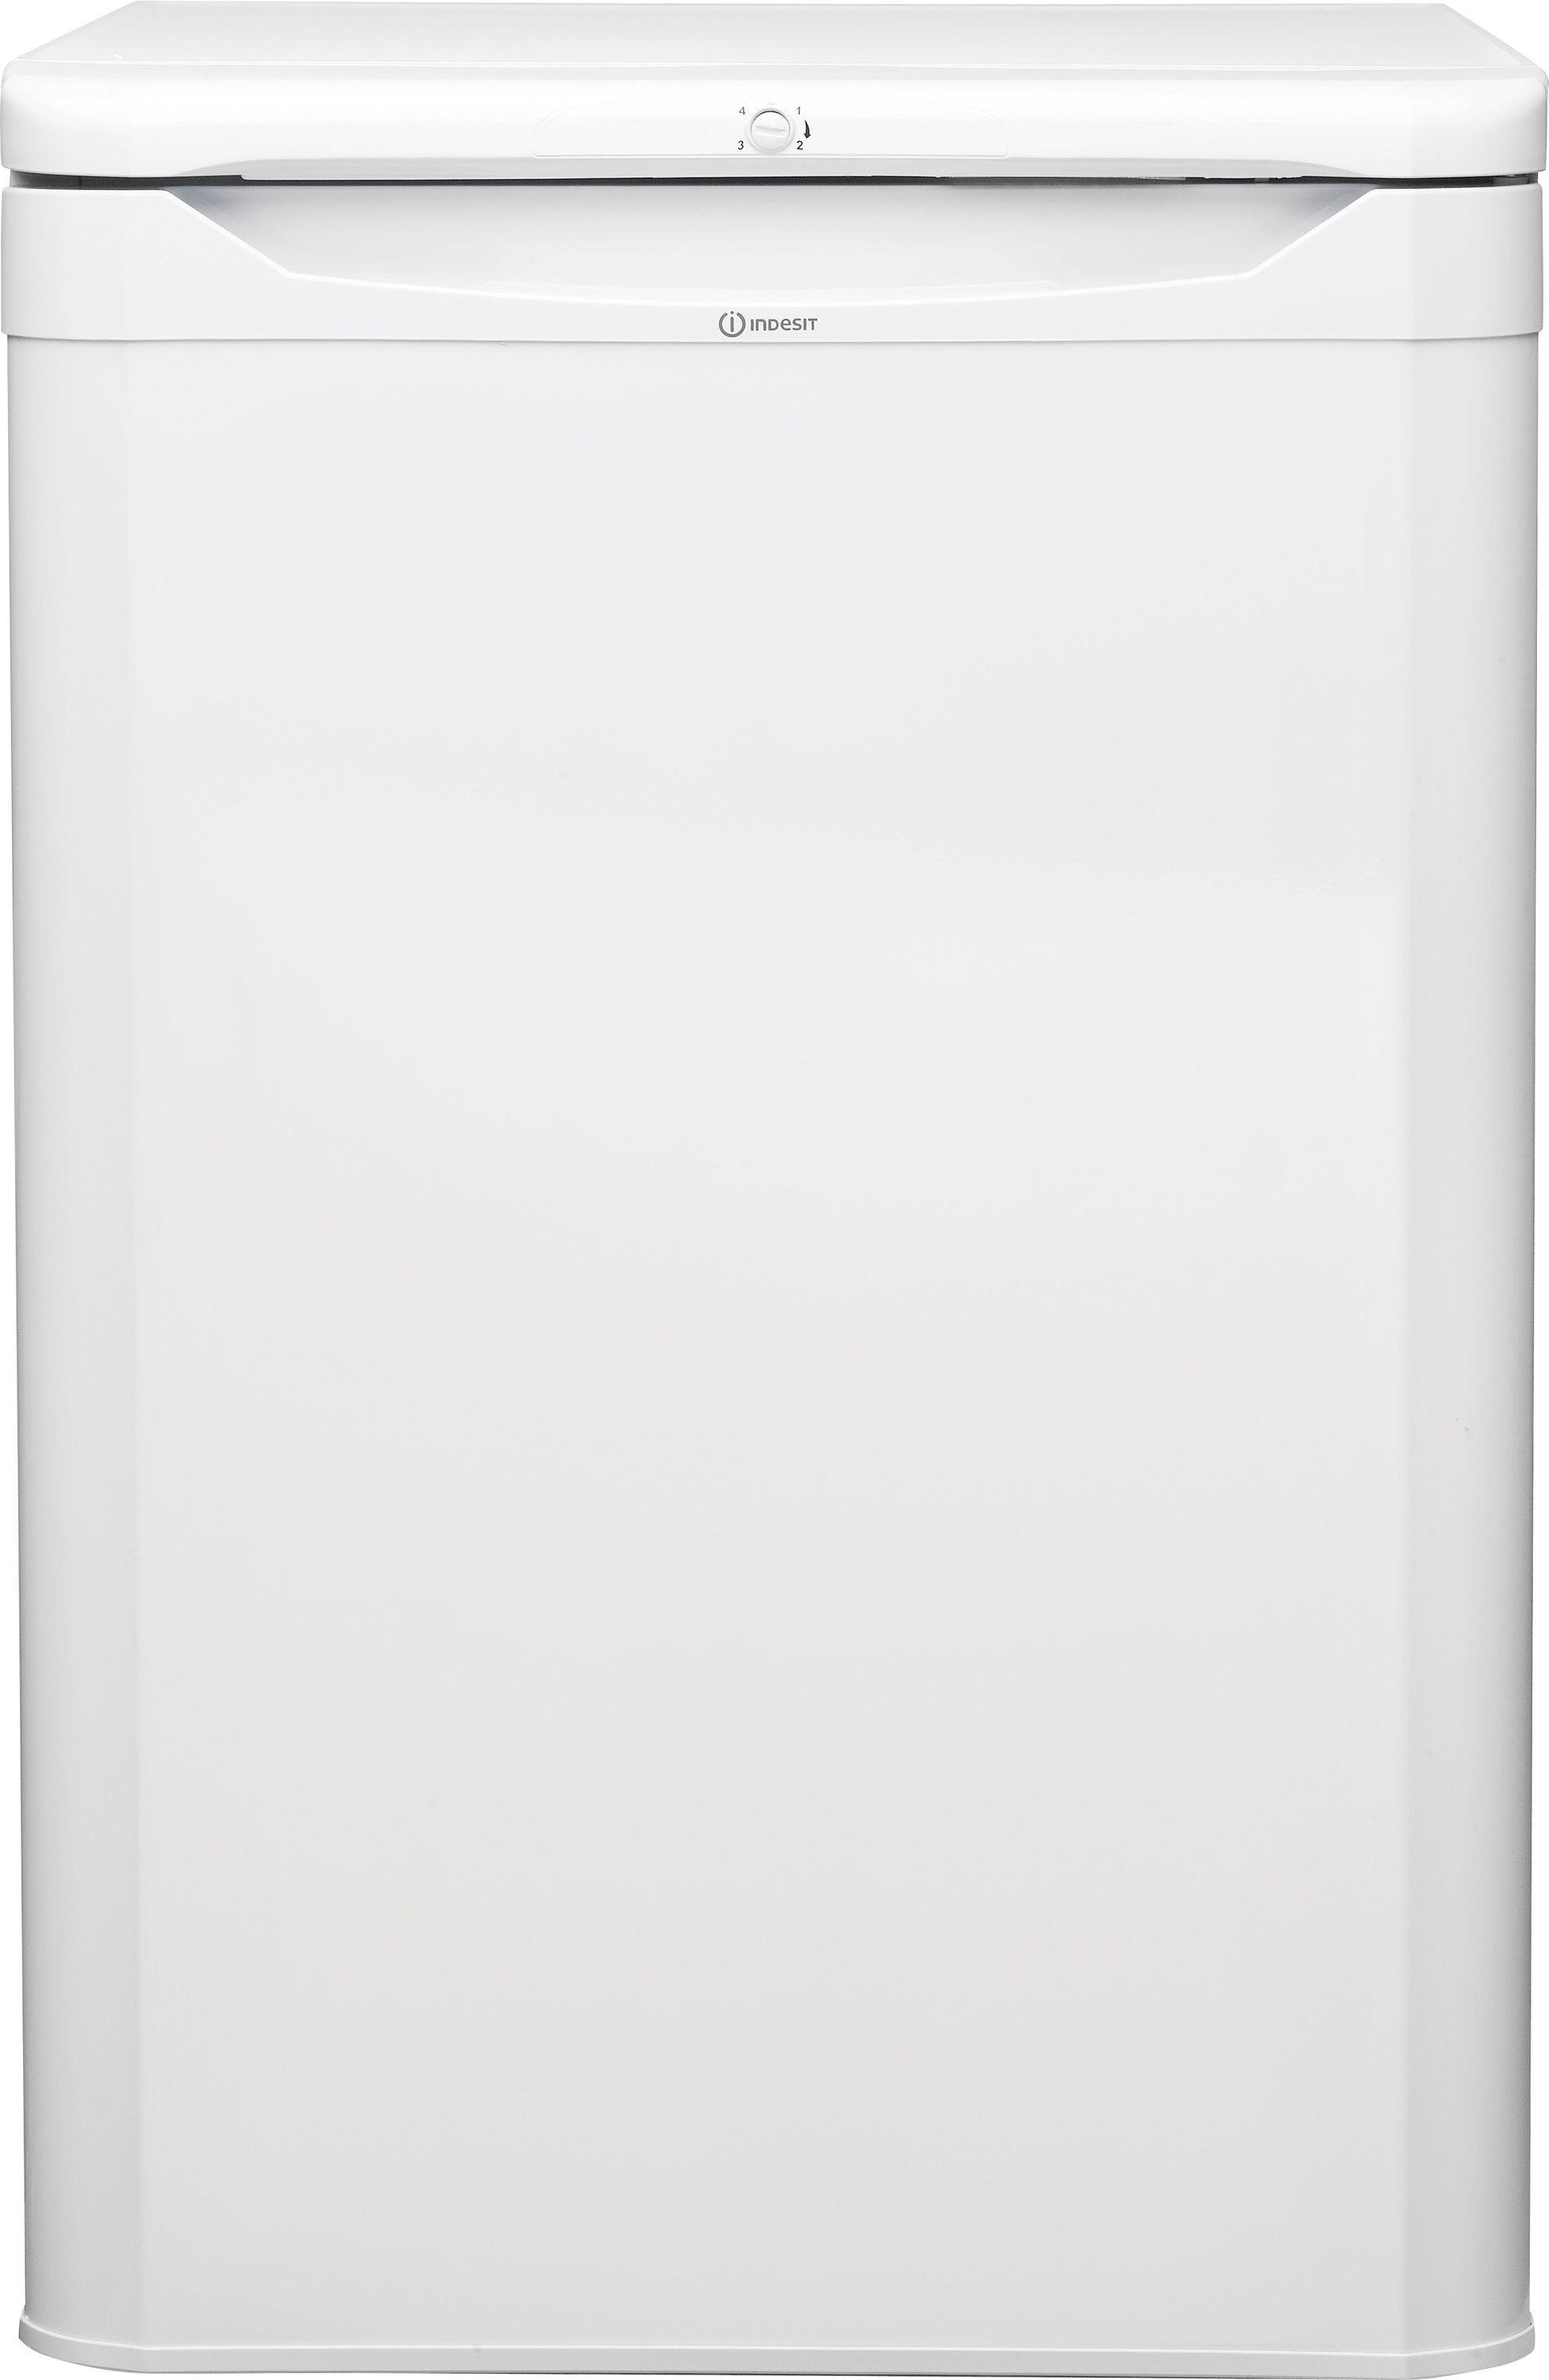 Indesit TZAA 10.1 Under Counter Freezer - White